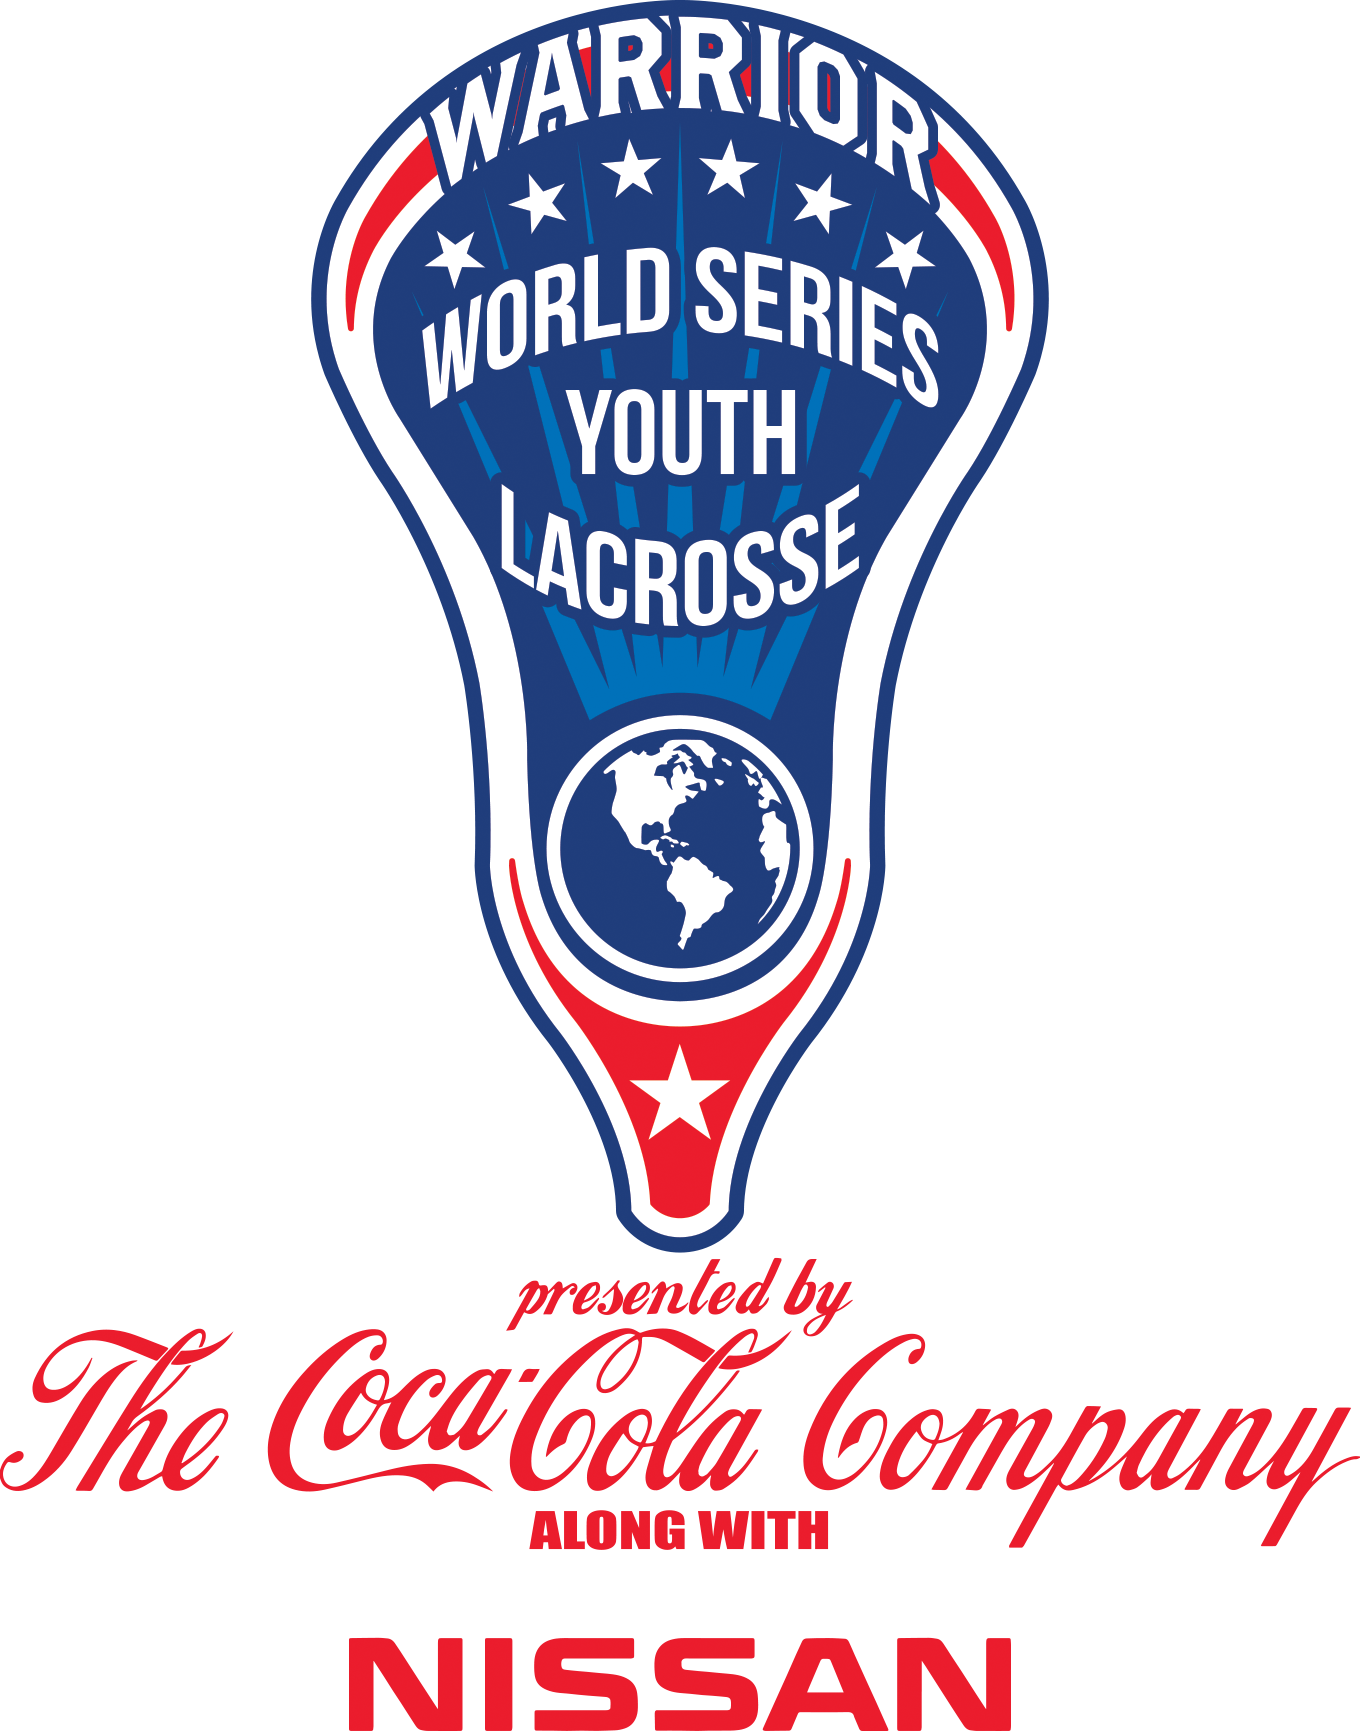 World Series of Youth Lacrosse